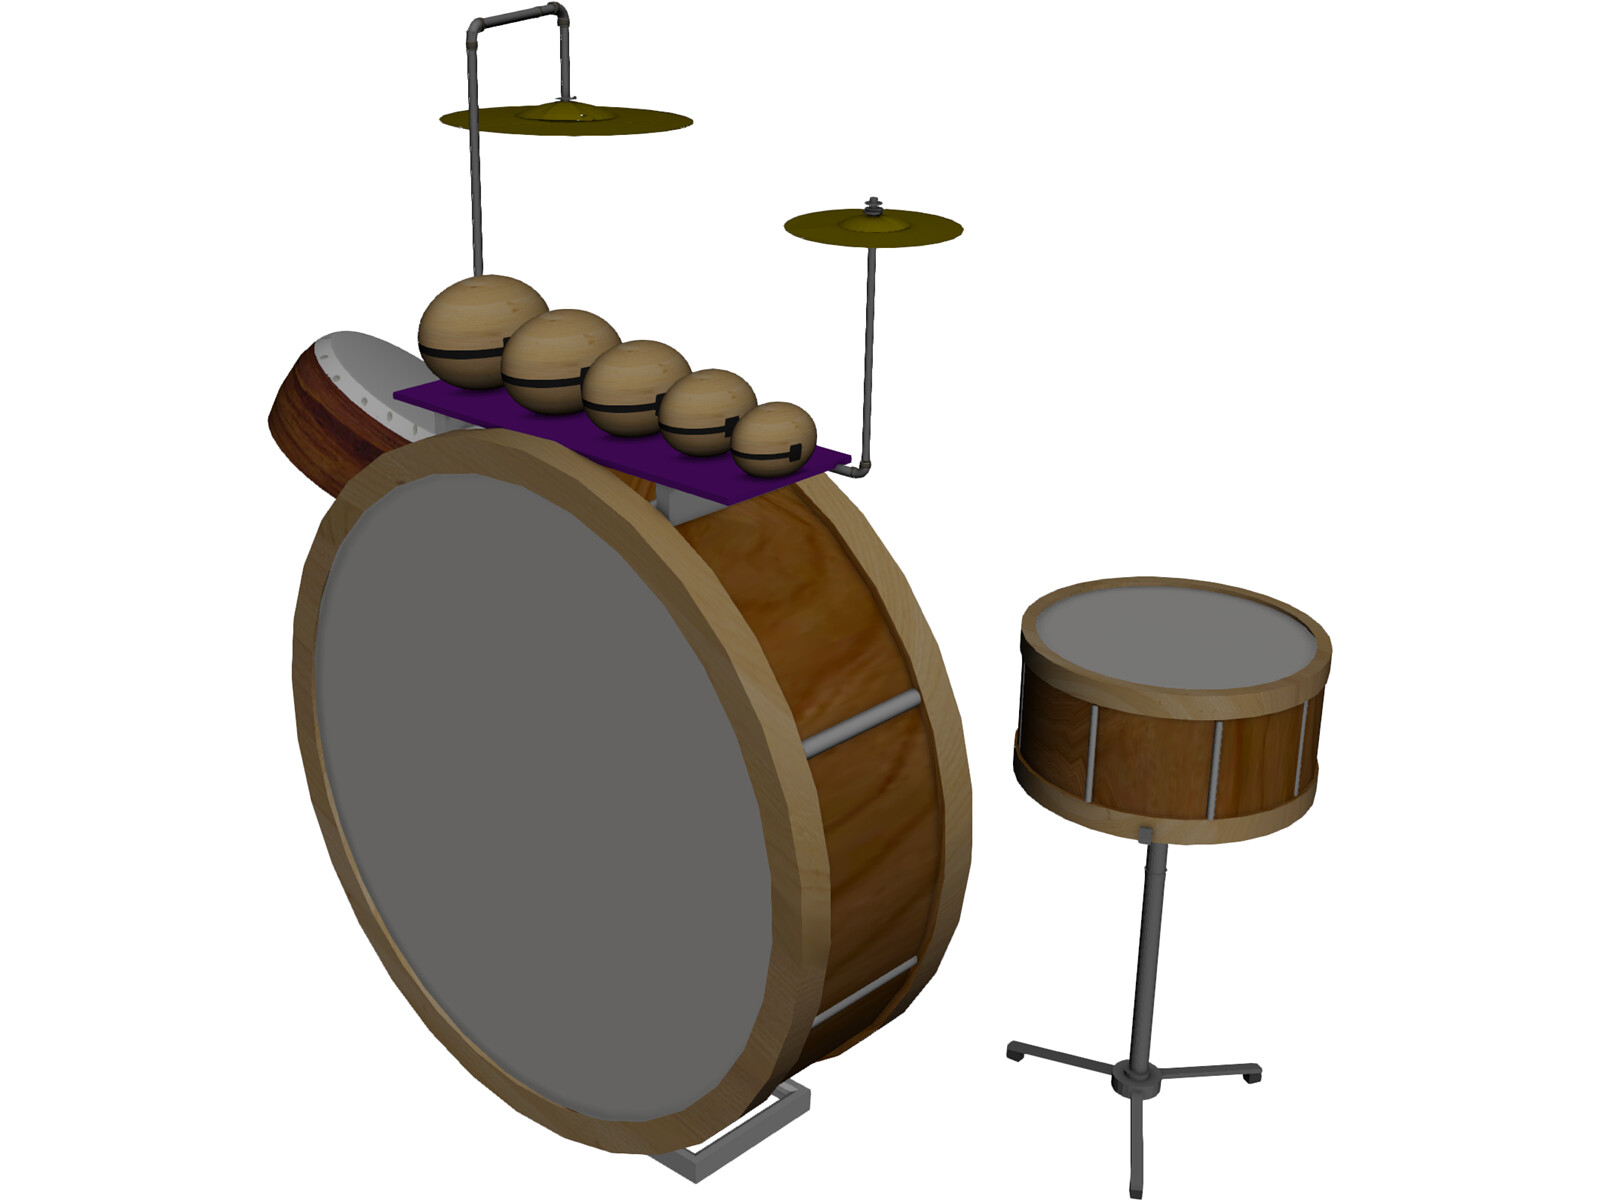 Antique Drum Kit 3D Model